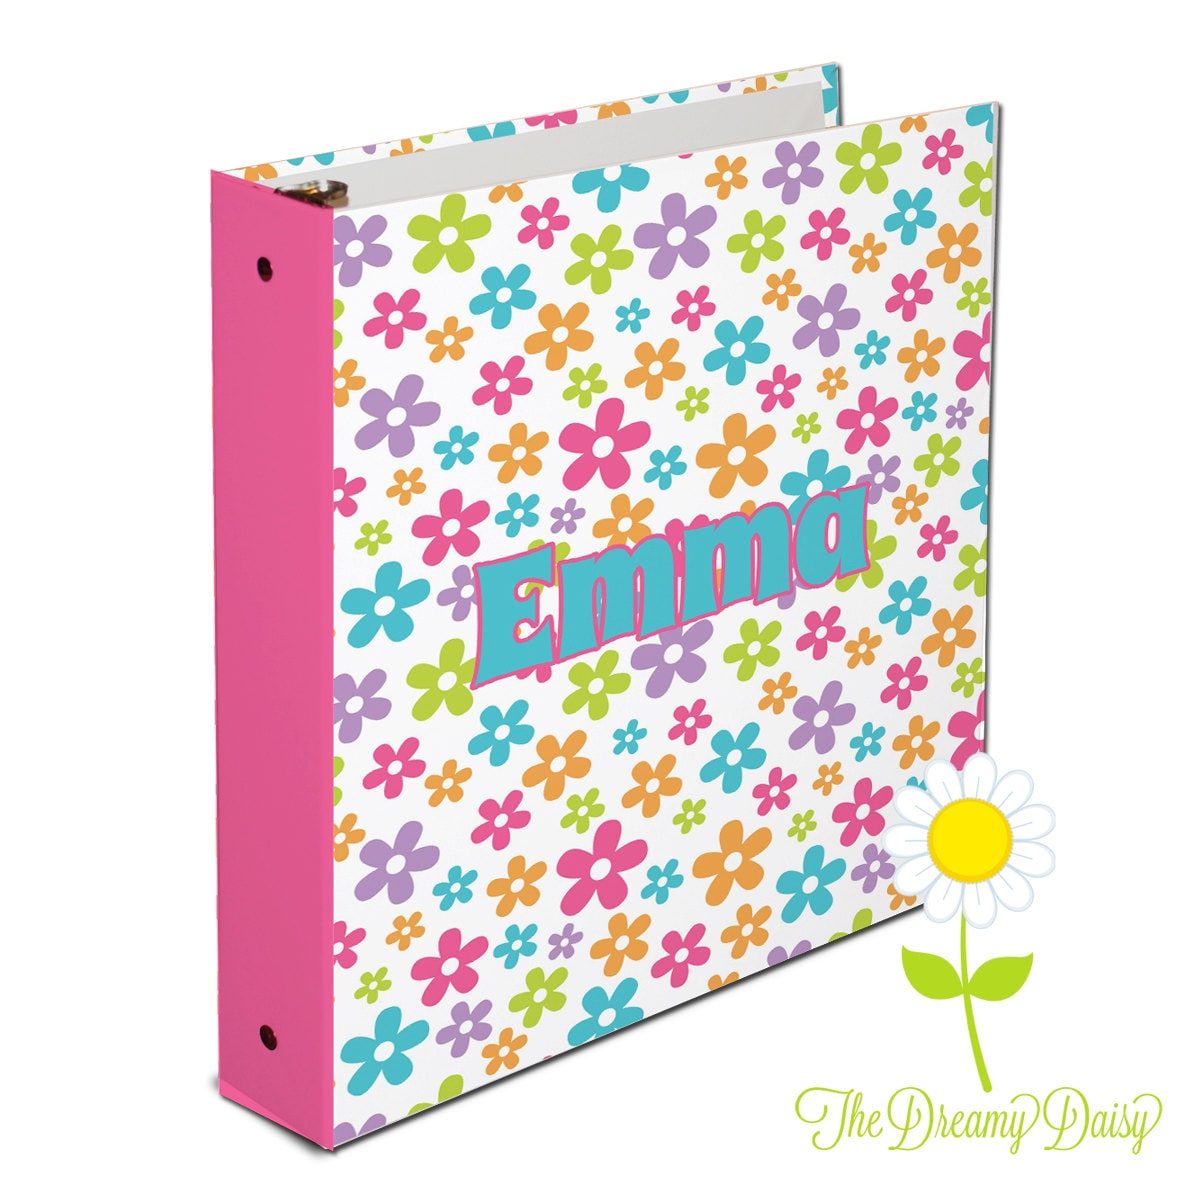 Personalized Binder For Kids Flower 3 Ring Binder For Girls